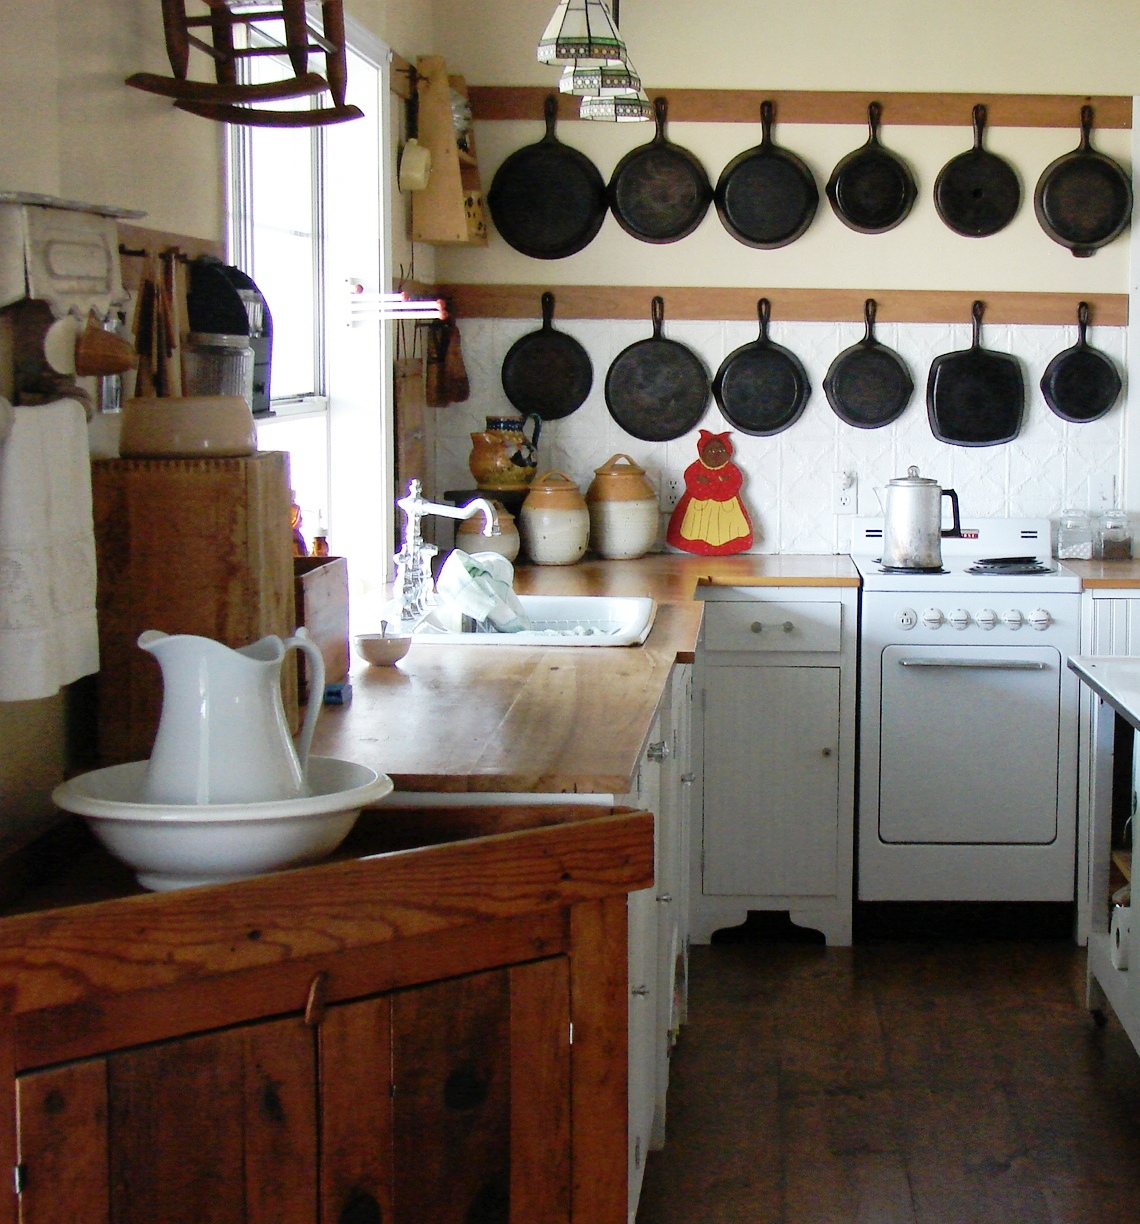 The Country Farm Home: My Kitchen's Hidden Secrets